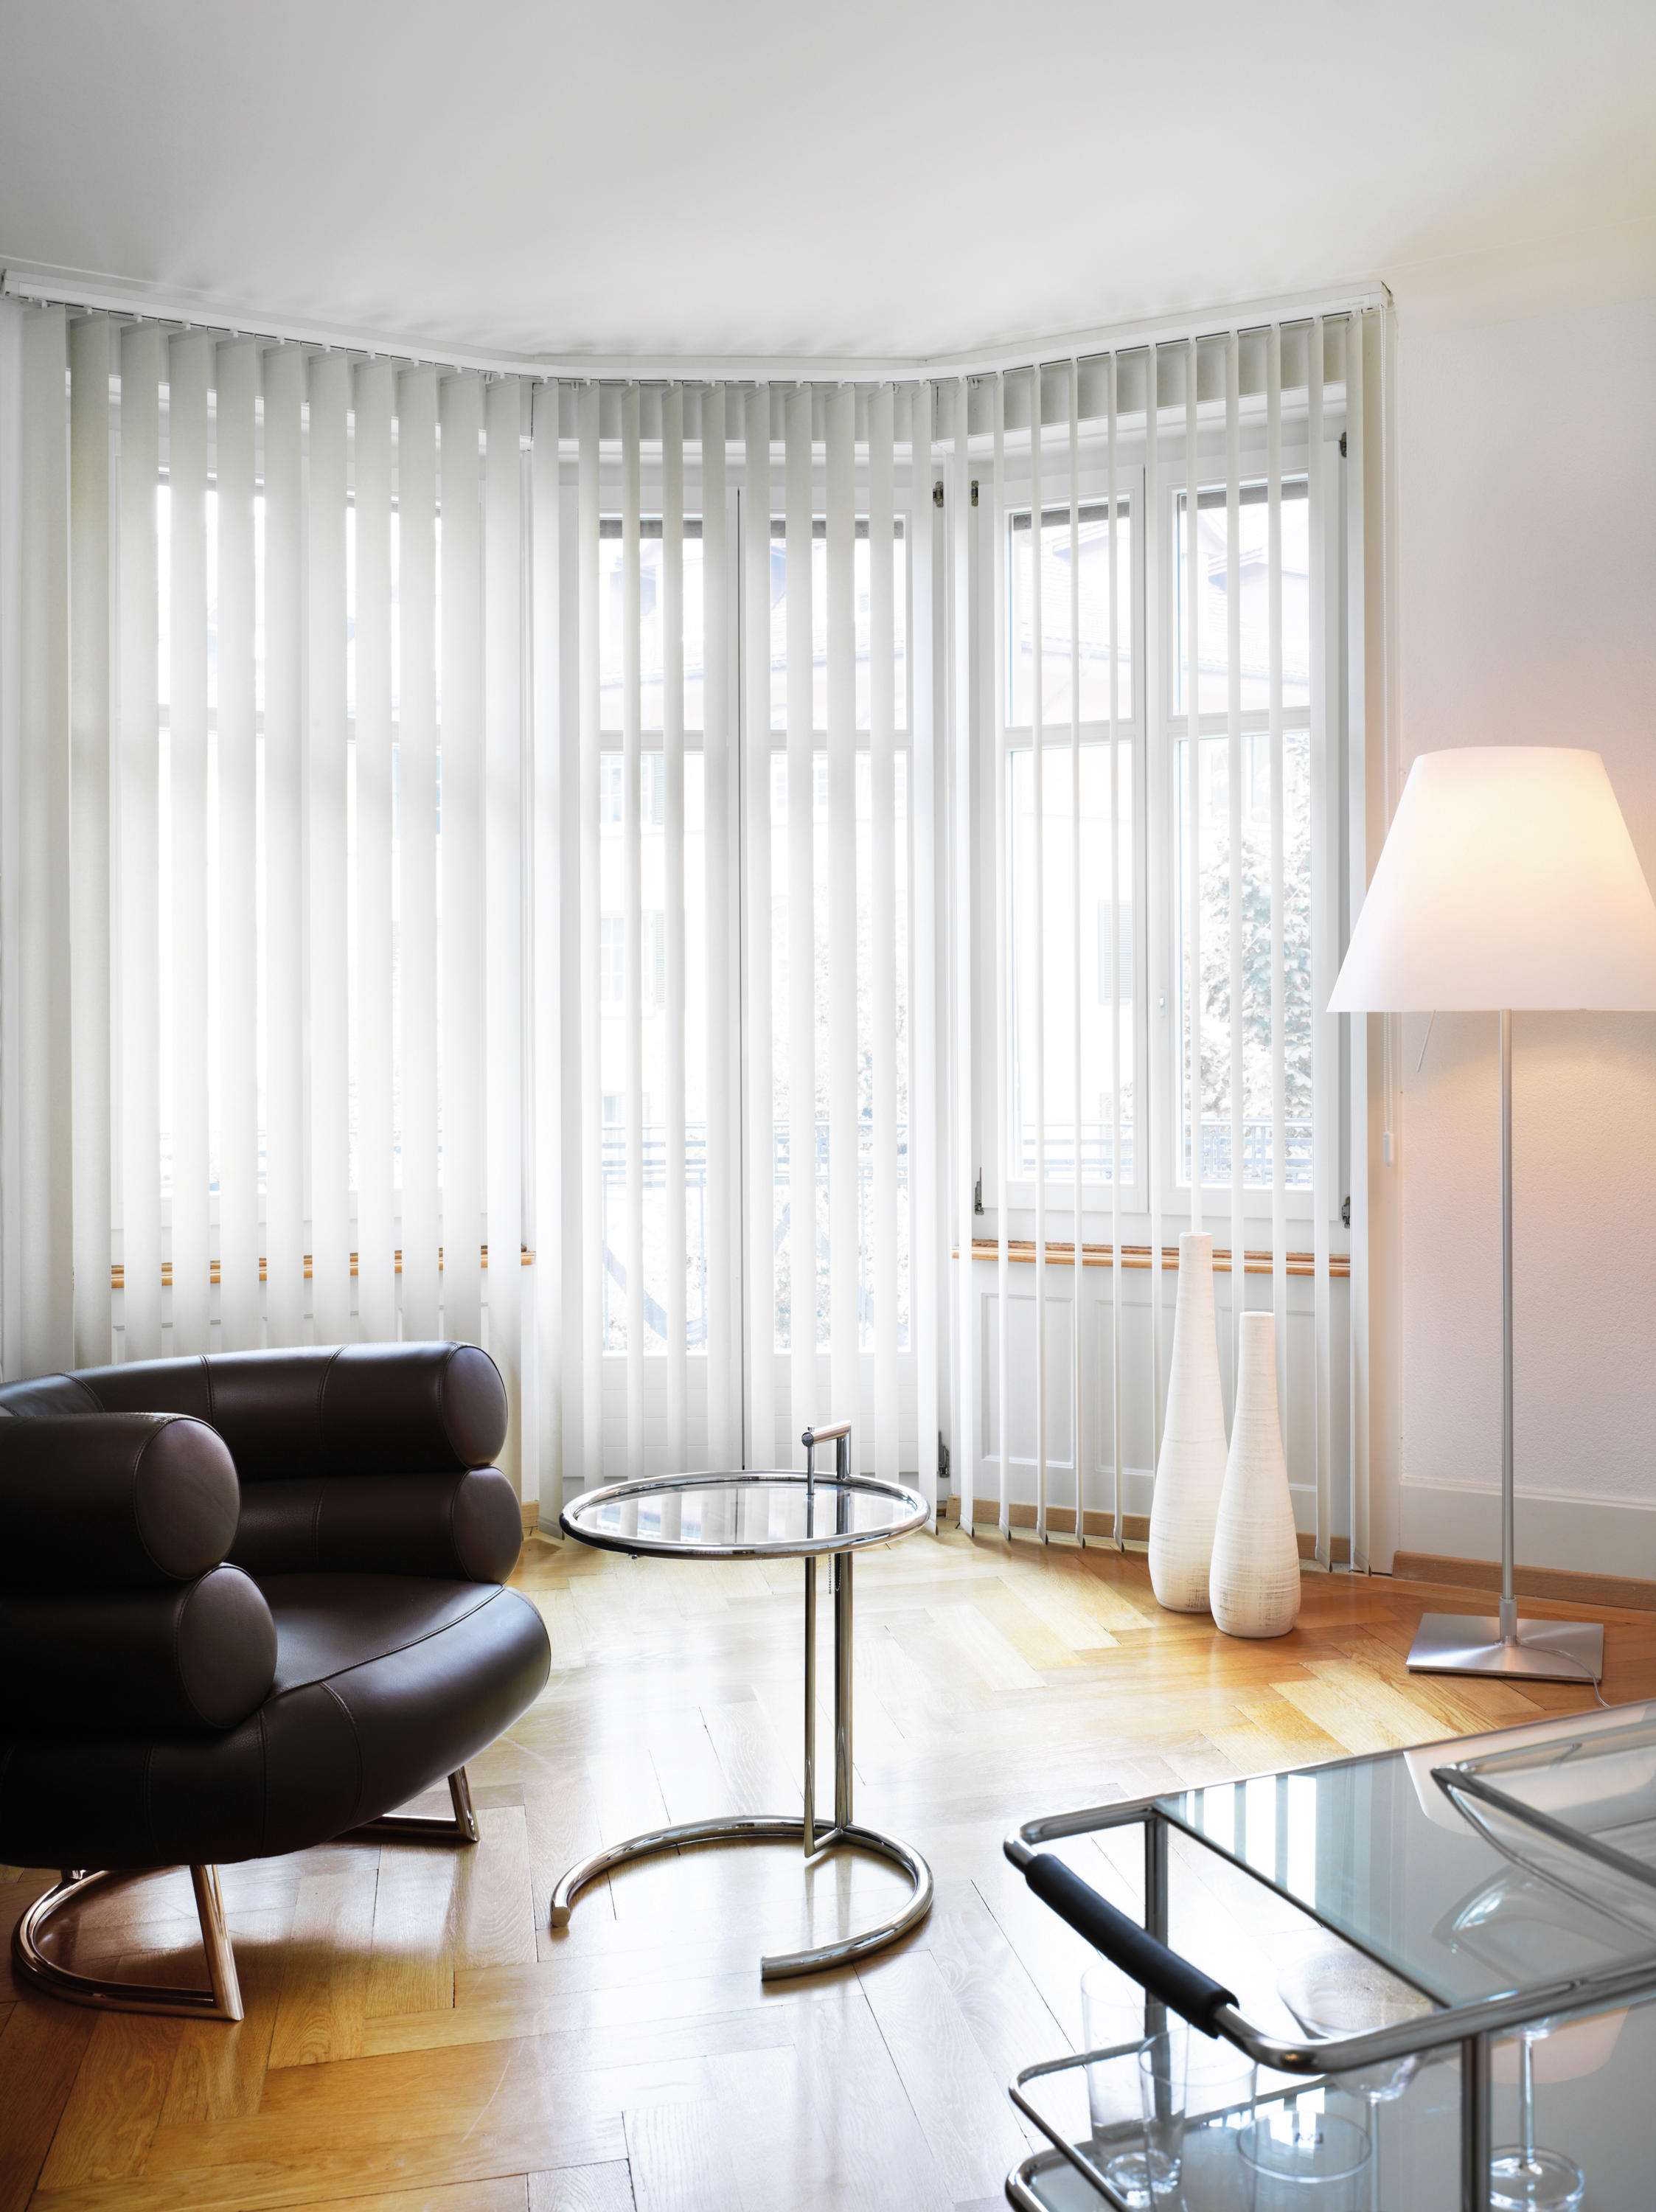 window blinds product lanka vertical copy light shade sri blind